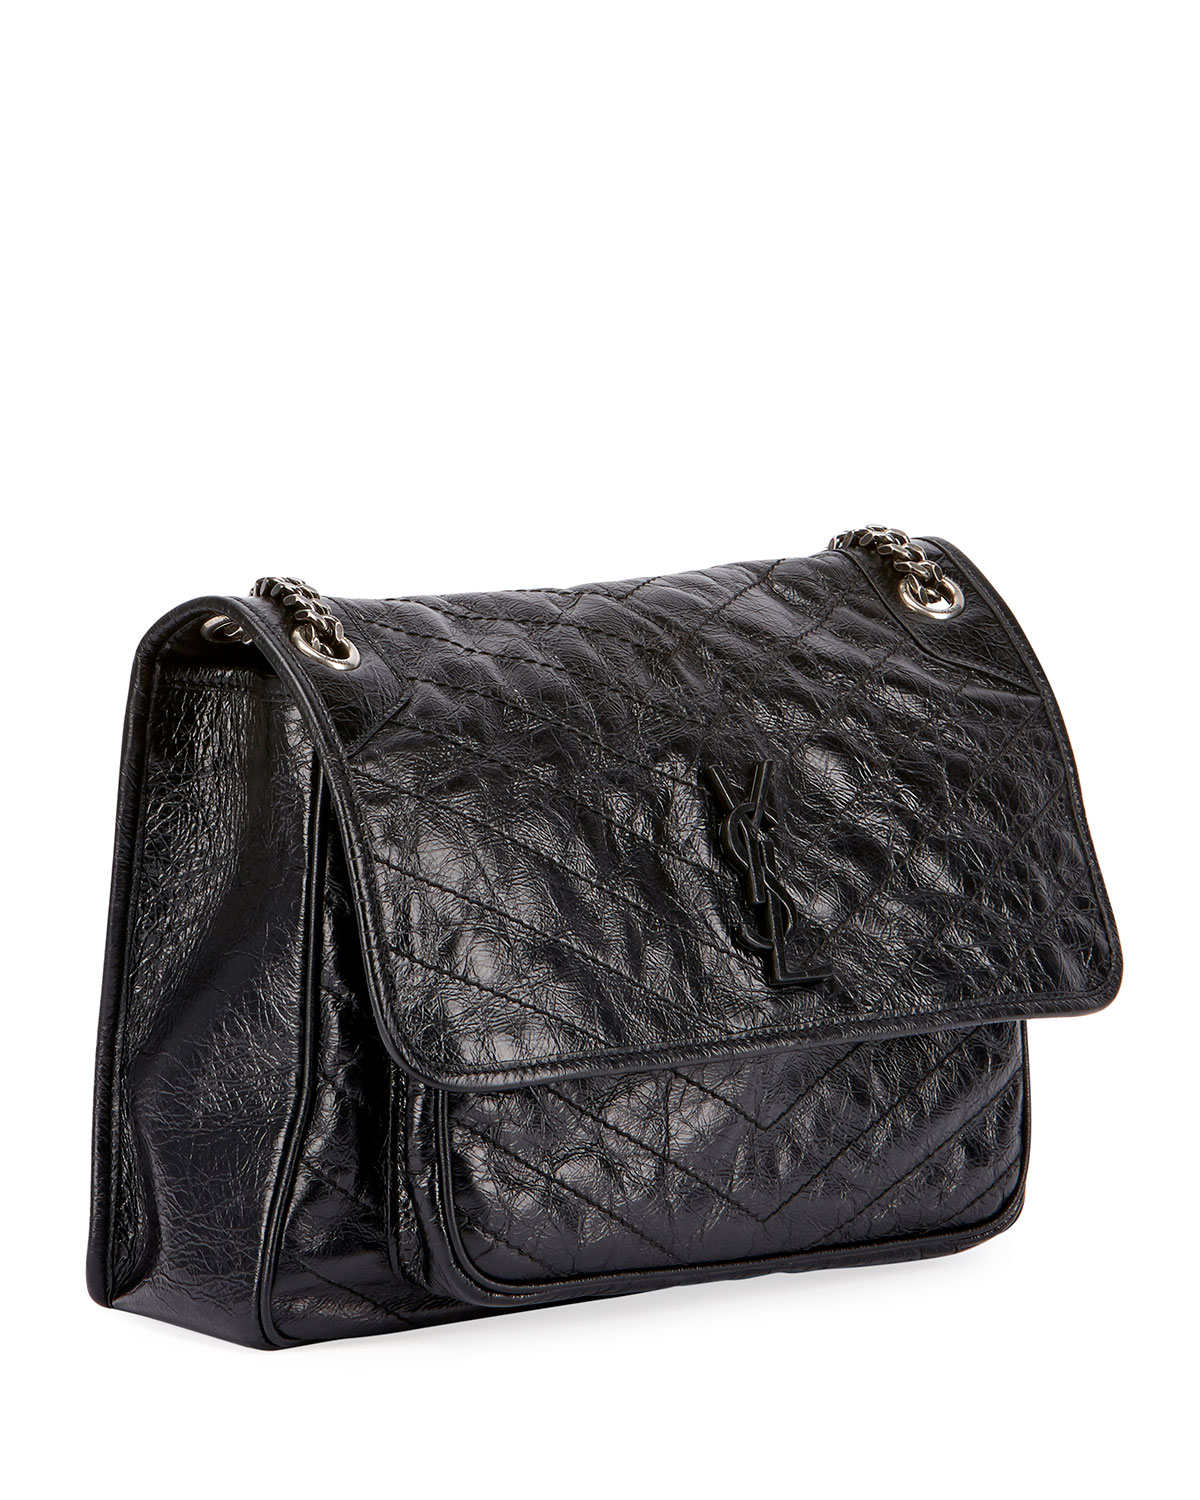 846b8f1097 Saint Laurent Niki Medium Monogram YSL Shiny Waxy Quilted Shoulder Bag |  Neiman Marcus